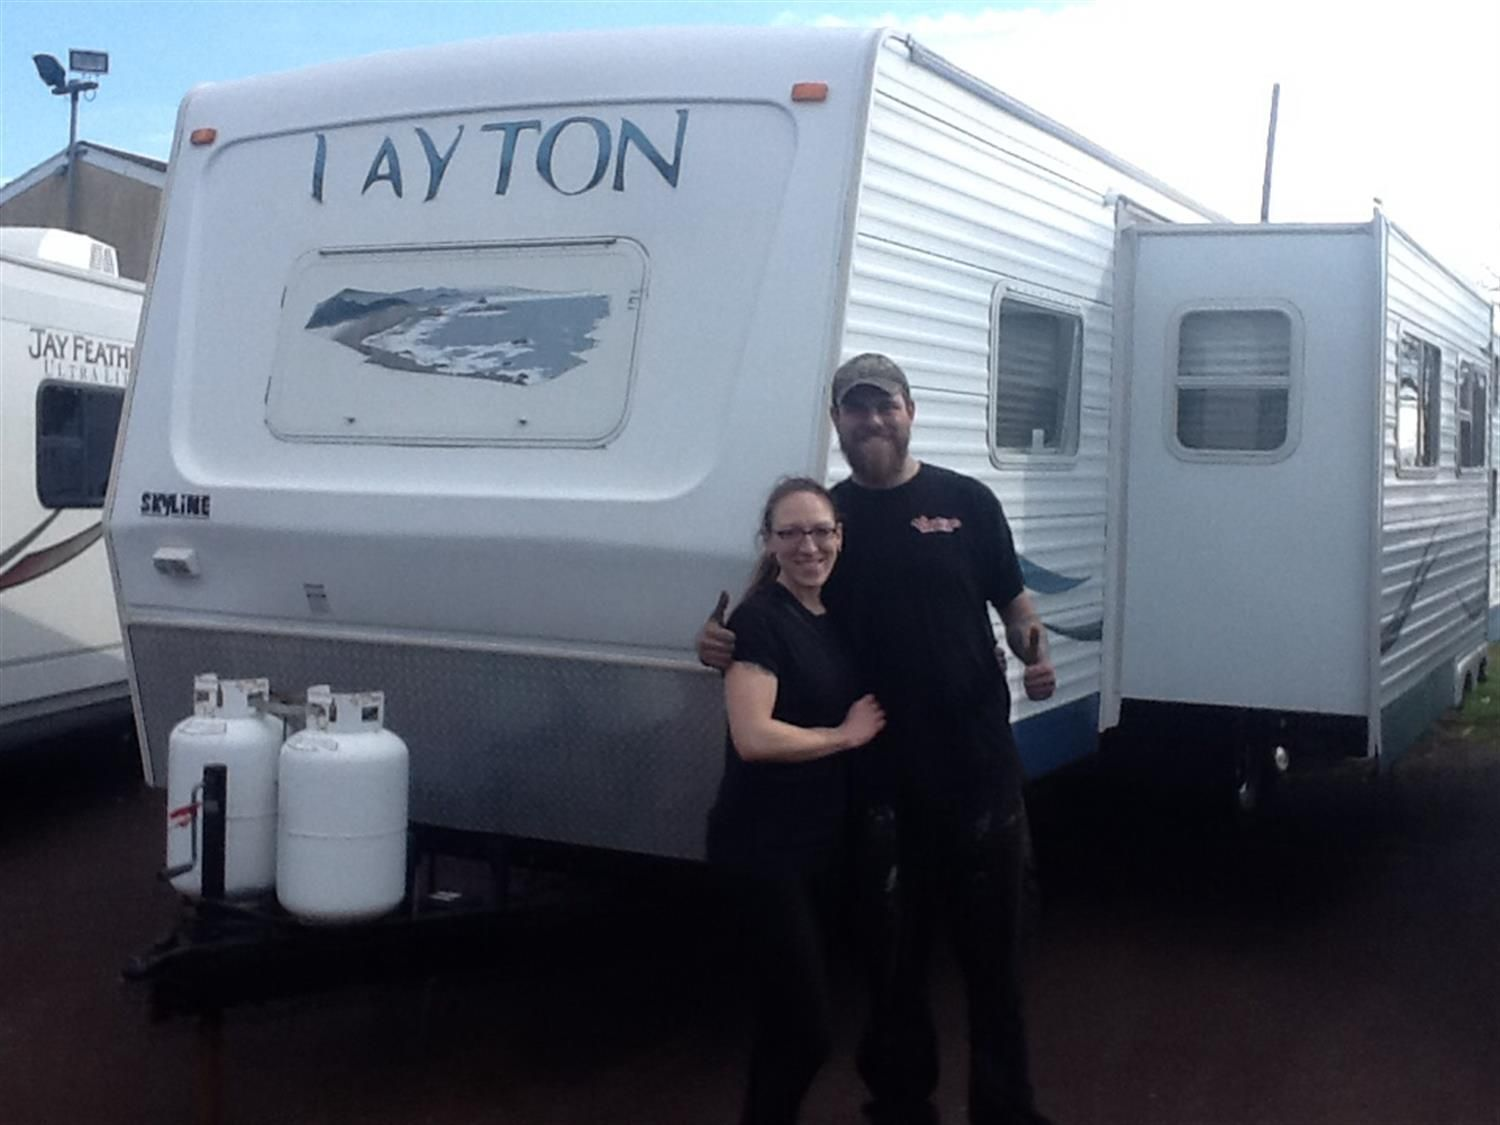 Congratulations And Best Wishes Courtney And Frank On The Purchase Of Your 2007 Skyline Layton We In 2020 Congratulations And Best Wishes Recreational Vehicles Rv